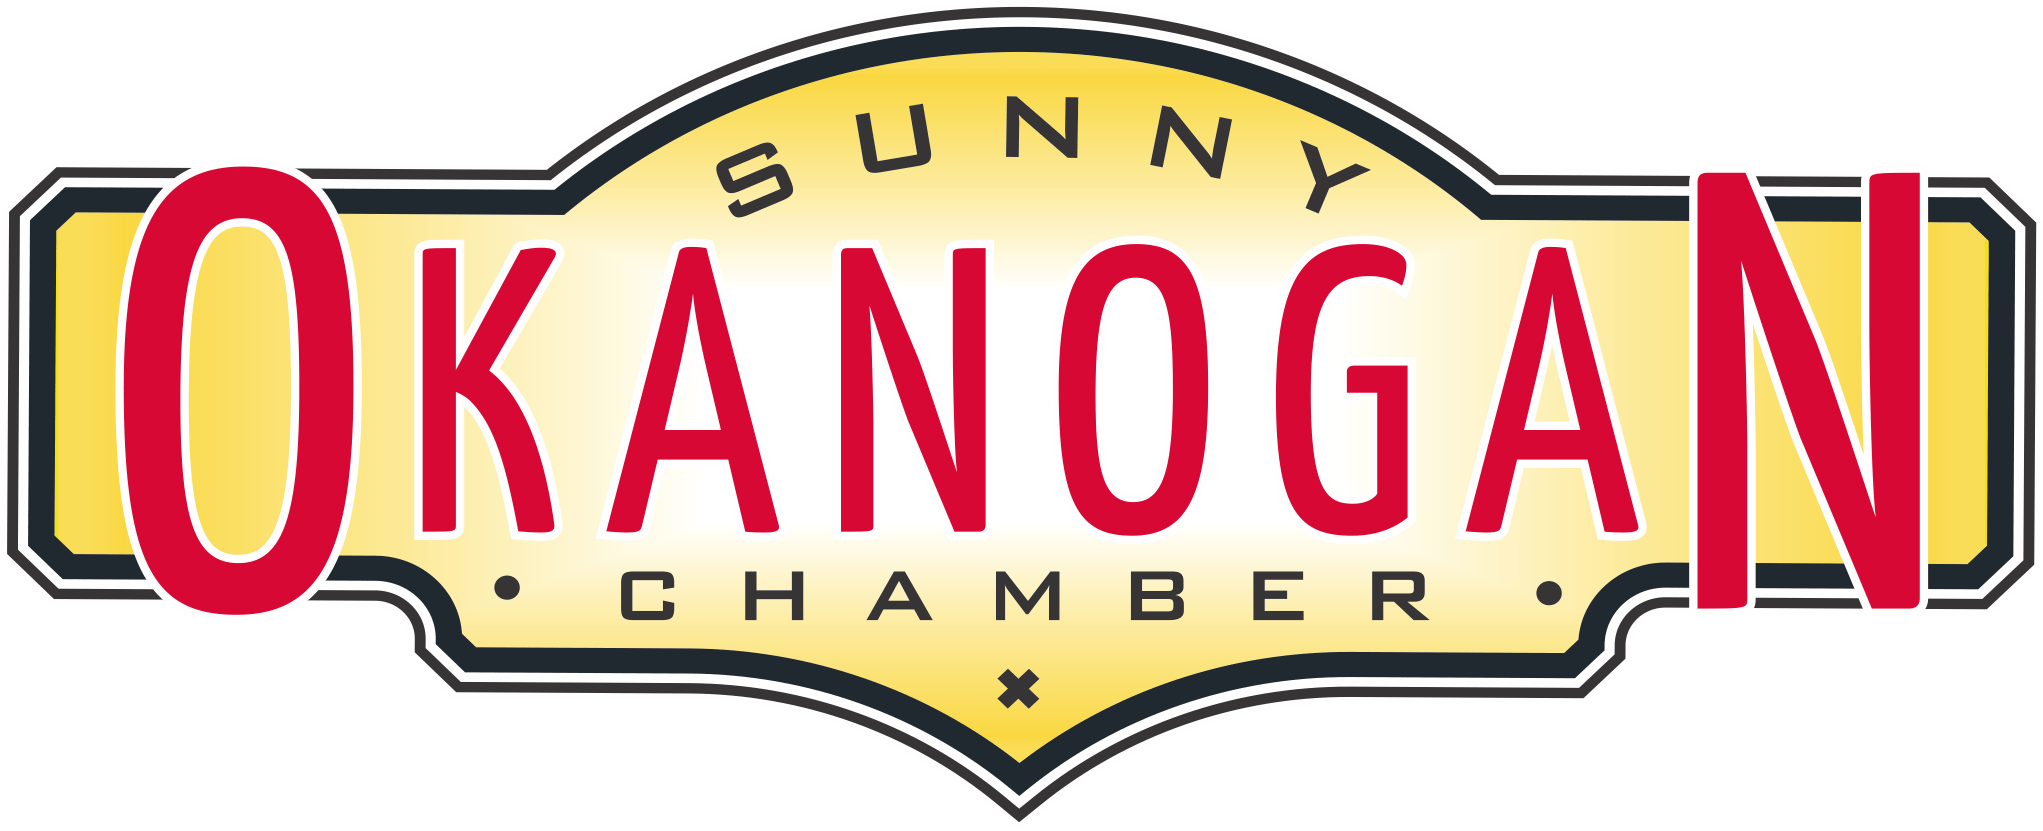 Welcome to the Sunny Okanogan Chamber of Commerce!